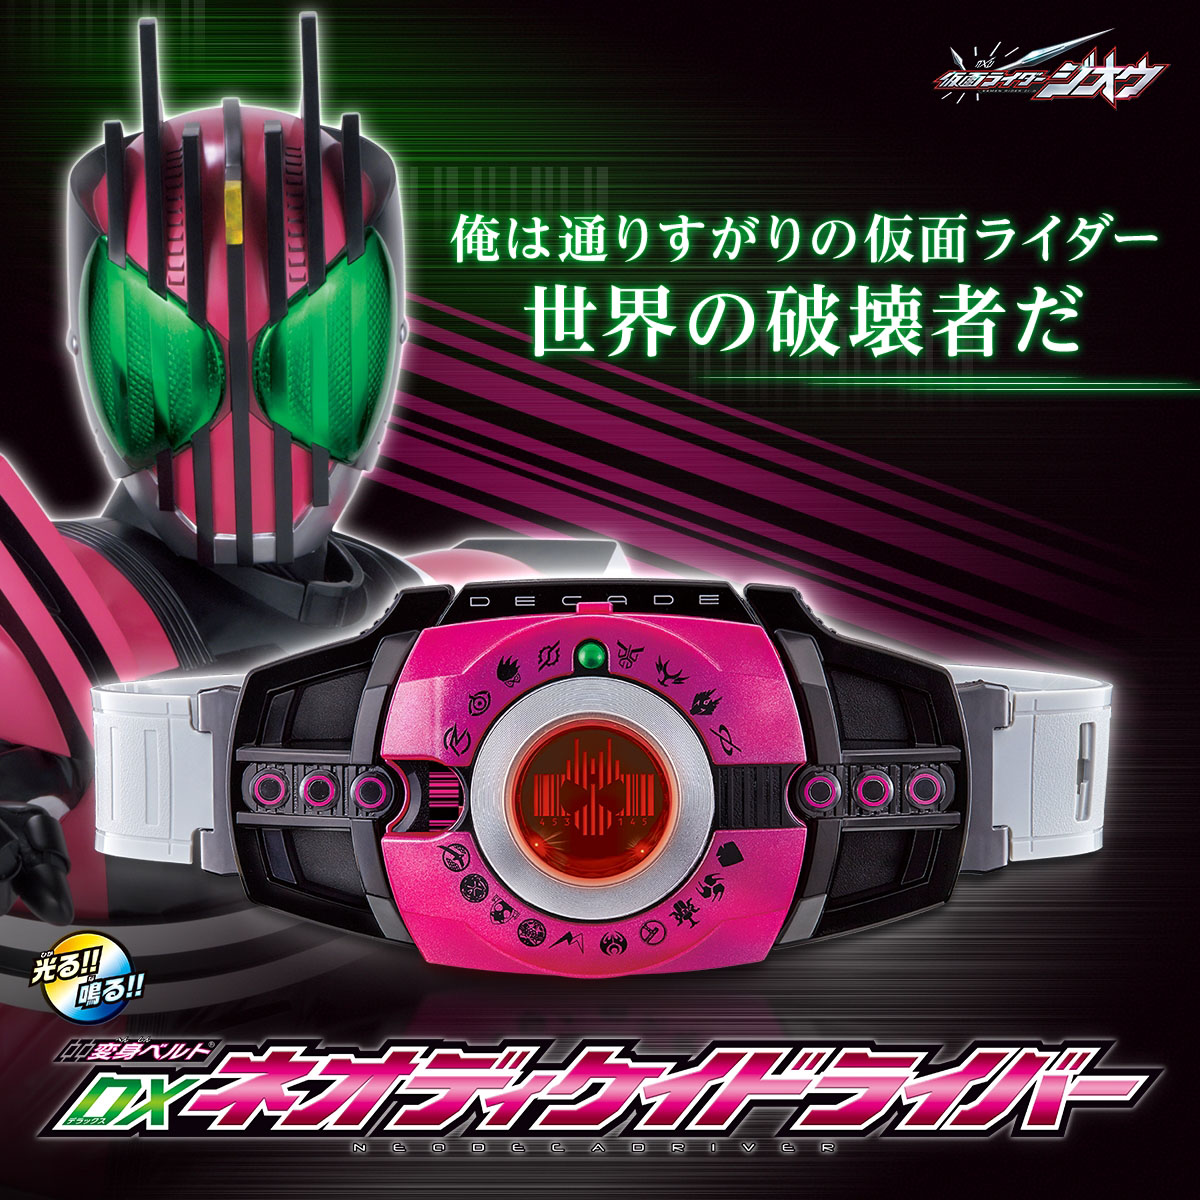 Kamen rider ooo driver apk download